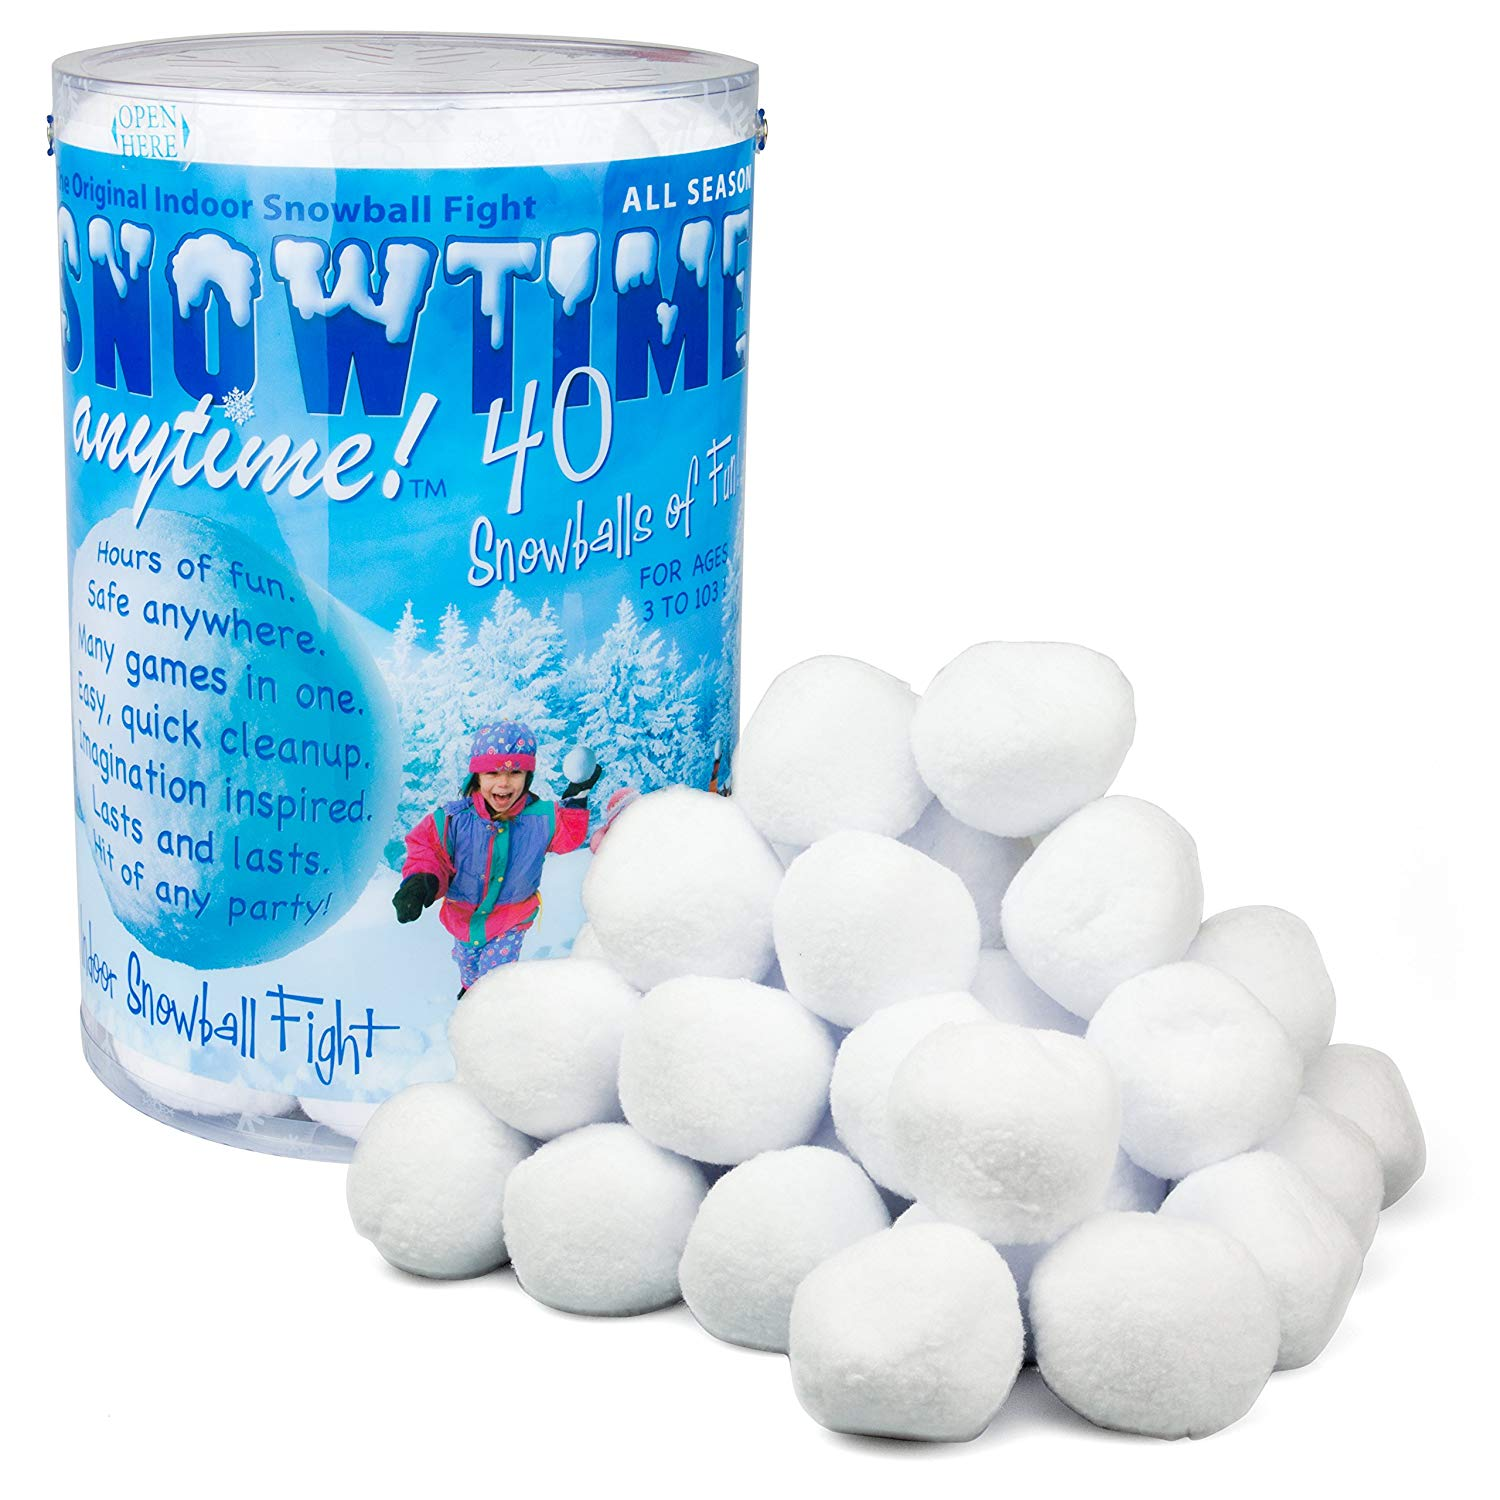 Indoor Snowball Fight SNOWTIME ANYTIME